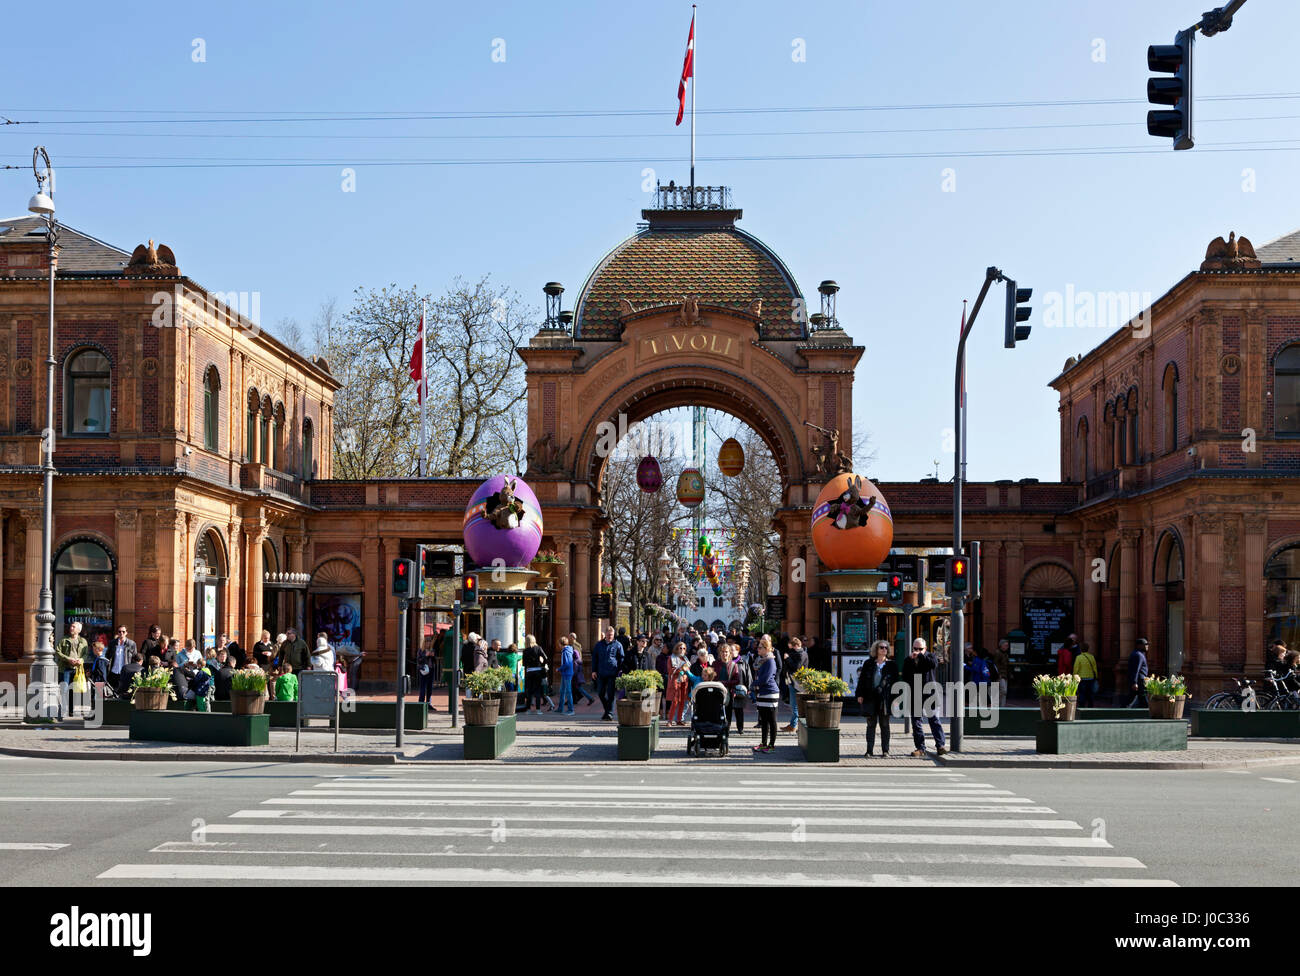 The Tivoli Gardens' main entrance decorated with giant colourful Easter eggs and Easter bunnies on Palm Sunday - Stock Image